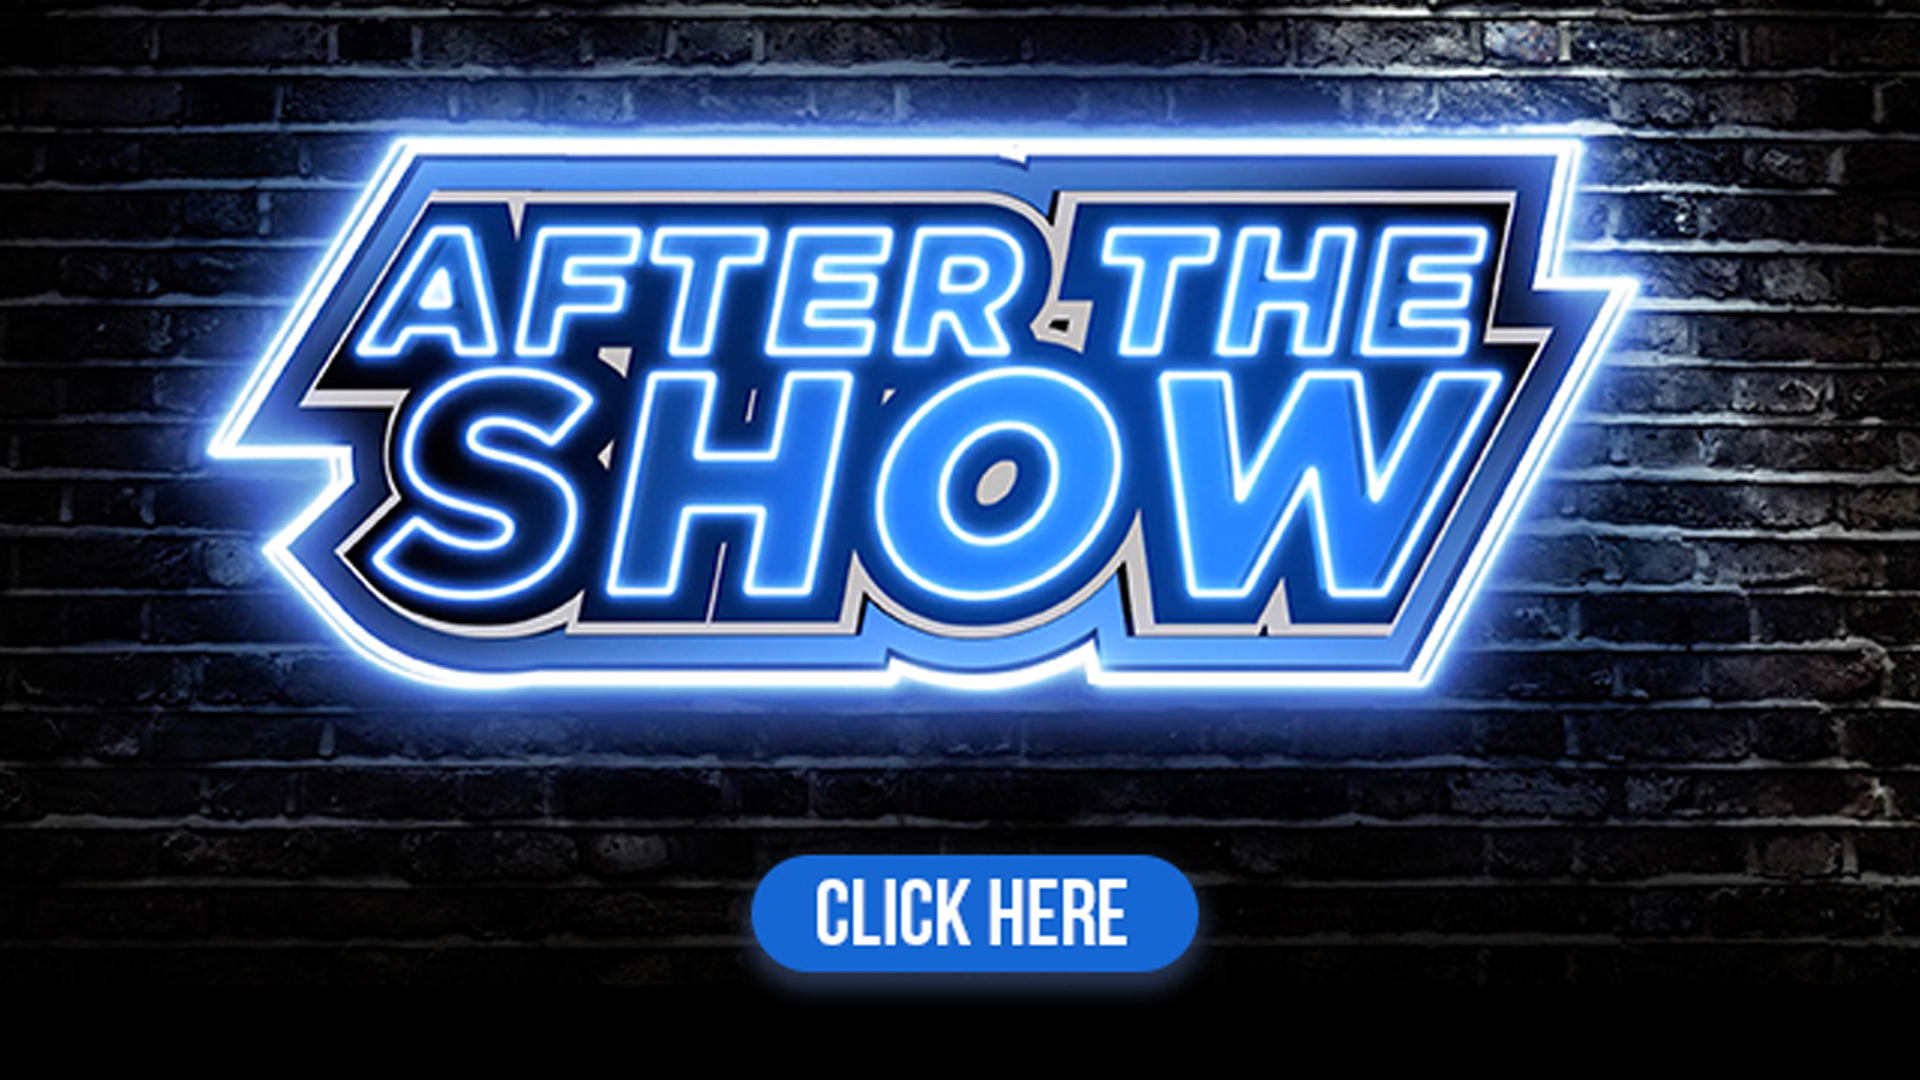 After the show logo